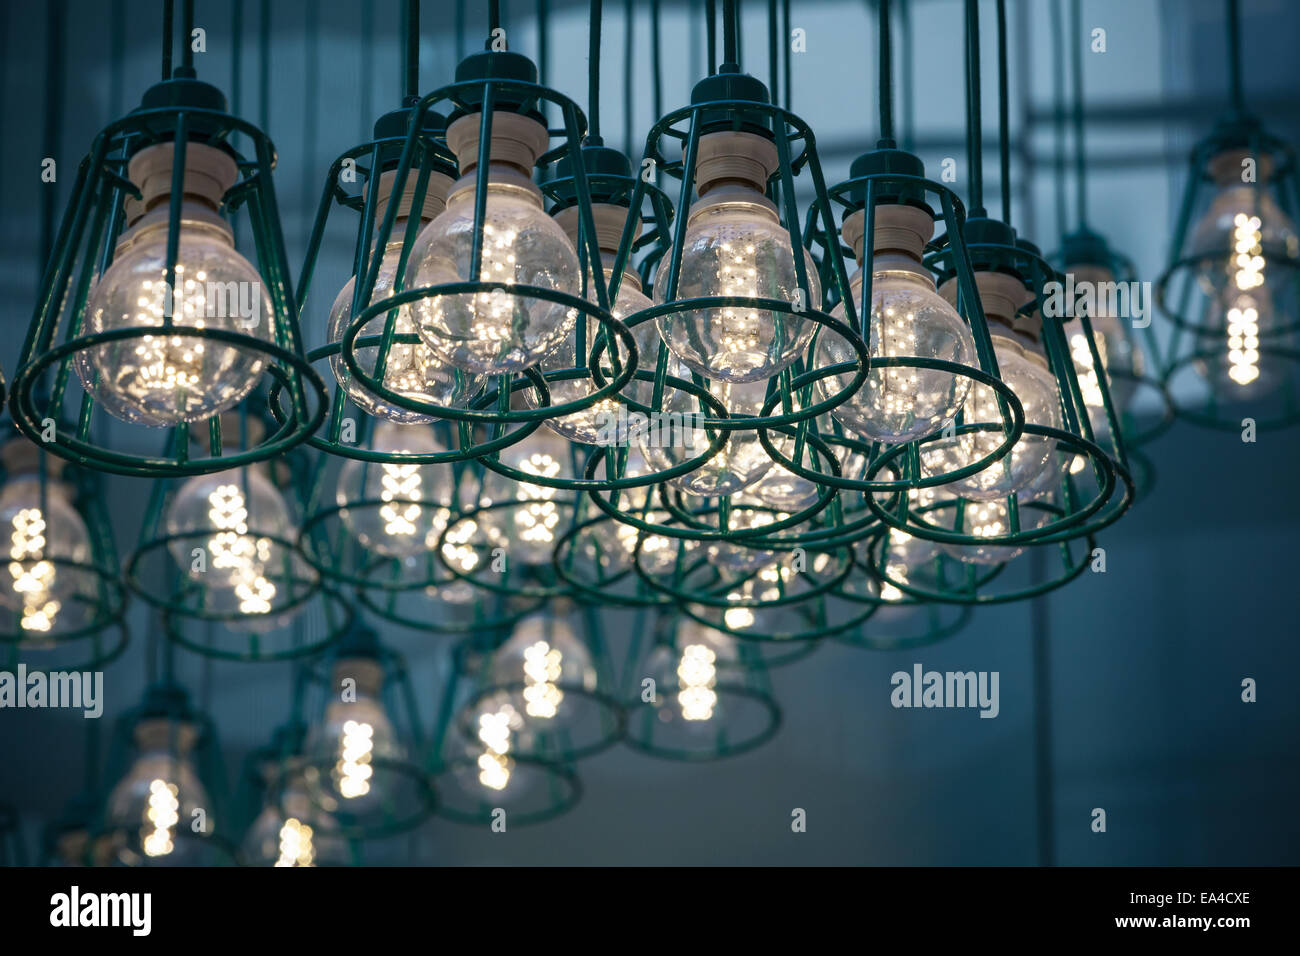 Abstract interior fragment. Stylized vintage illumination with modern LED lamps in metal lampshades - Stock Image